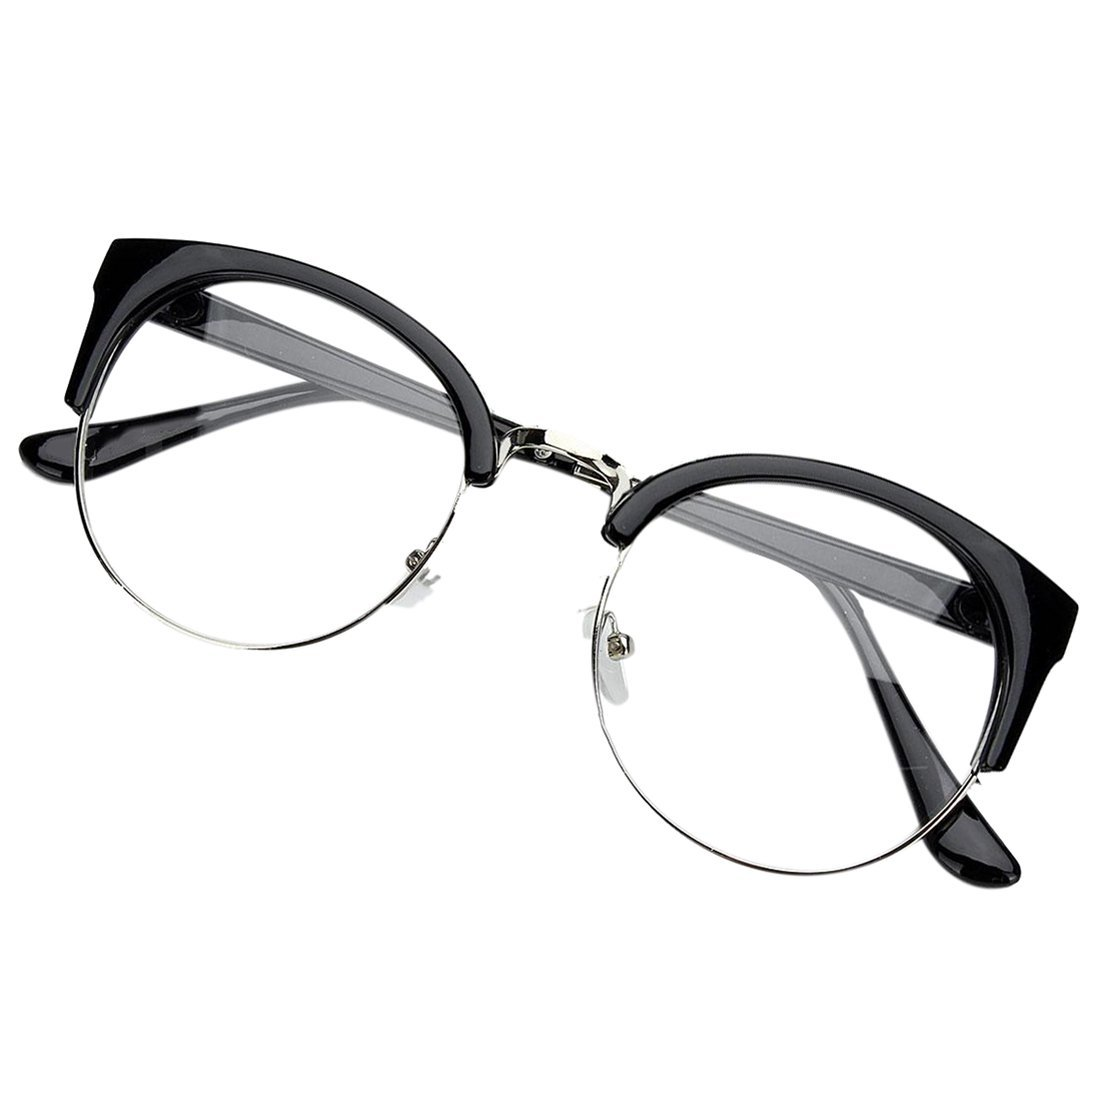 2cb3cc7d45 Get Quotations · Glasses - SODIAL(R)Retro Style Women Men Round Nerd  Glasses Clear Lens Eyewear